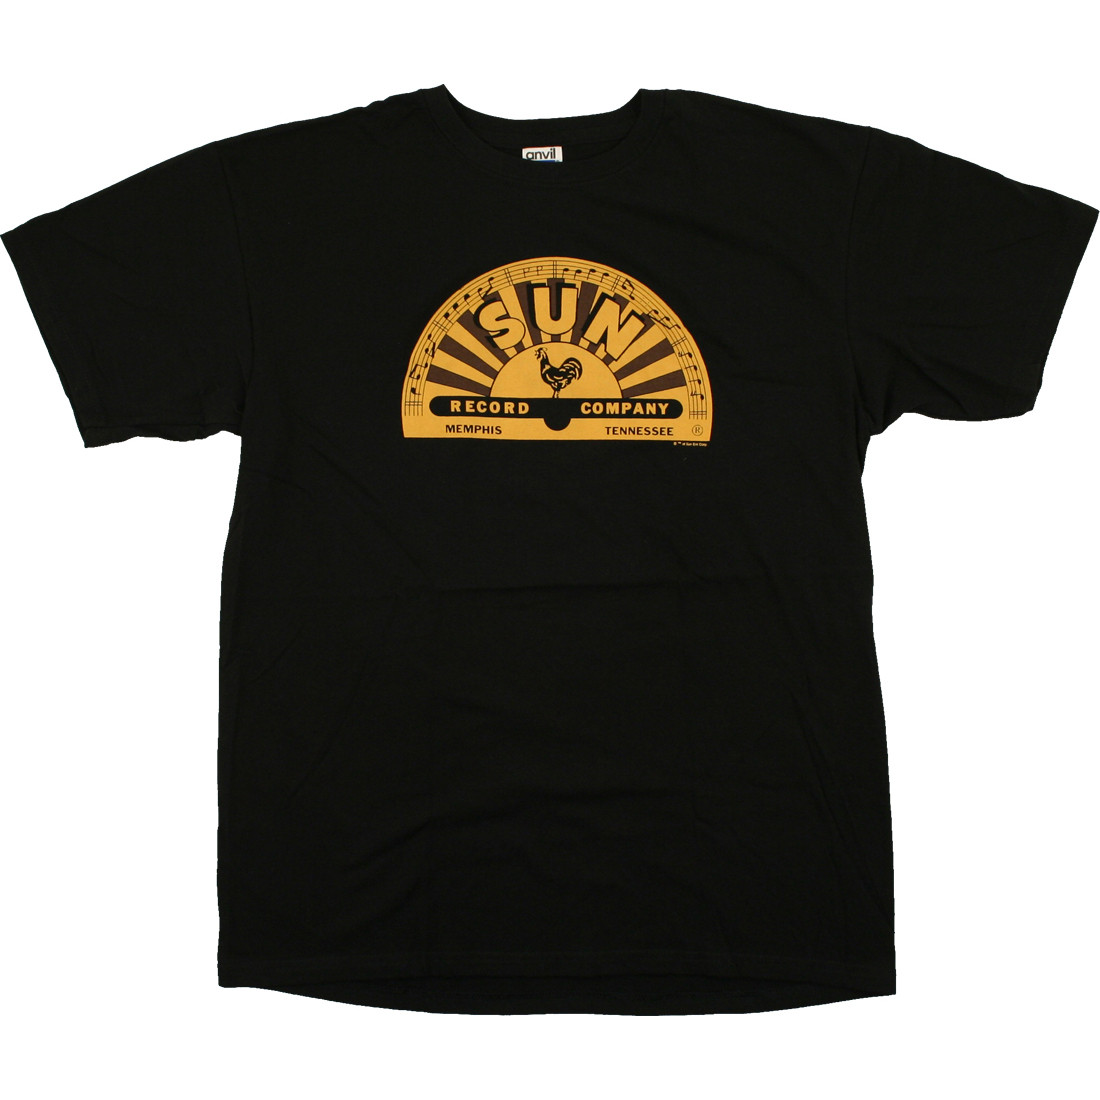 Sun Records Memphis Label Black T-Shirt